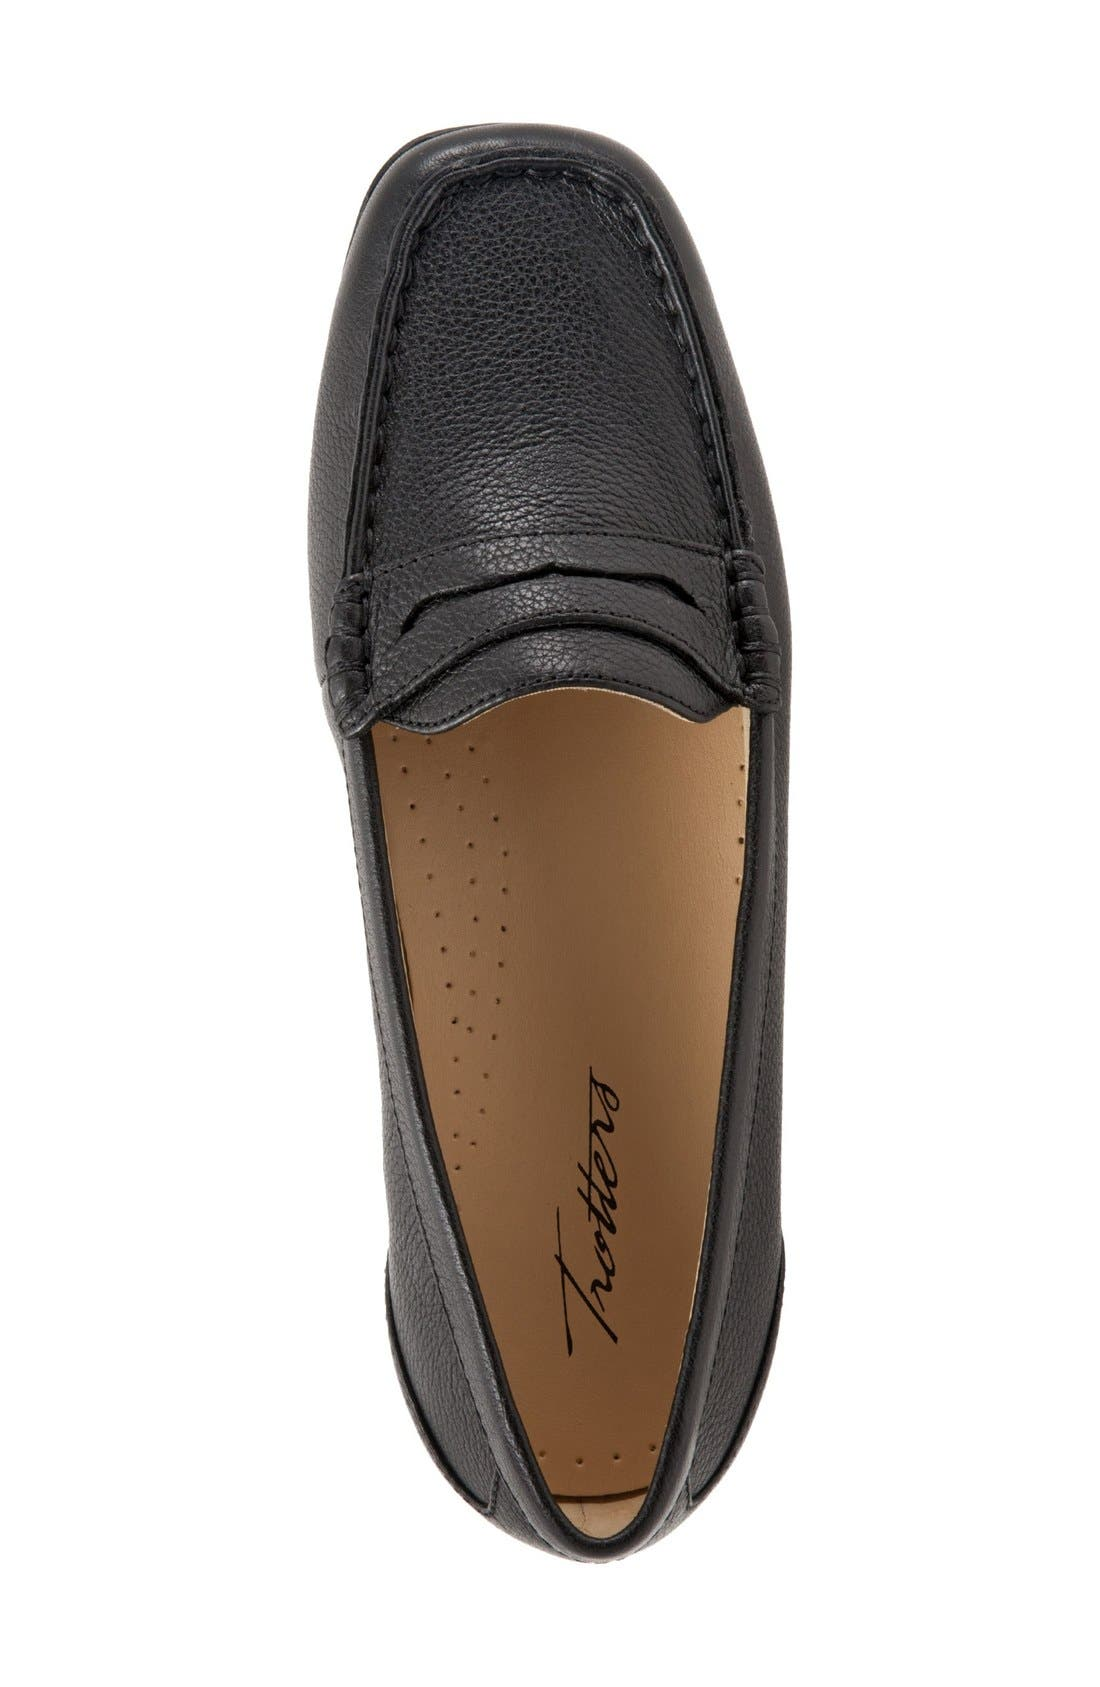 TROTTERS, 'Staci' Penny Loafer, Alternate thumbnail 3, color, BLACK LEATHER